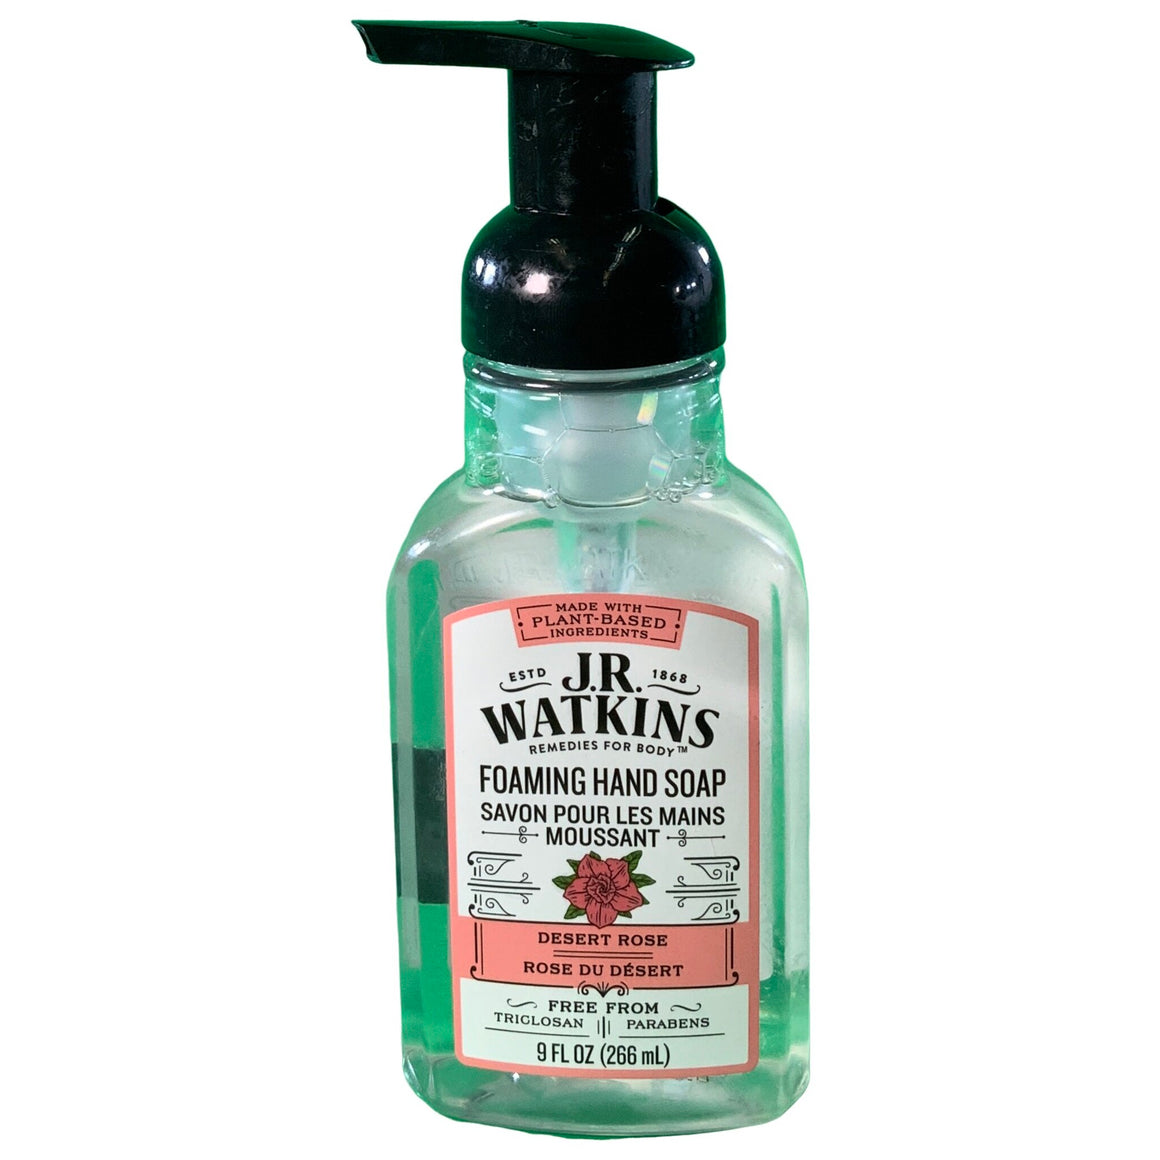 Foaming Hand Soap, Desert Rose, 9 Ounces - J.R. Watkins